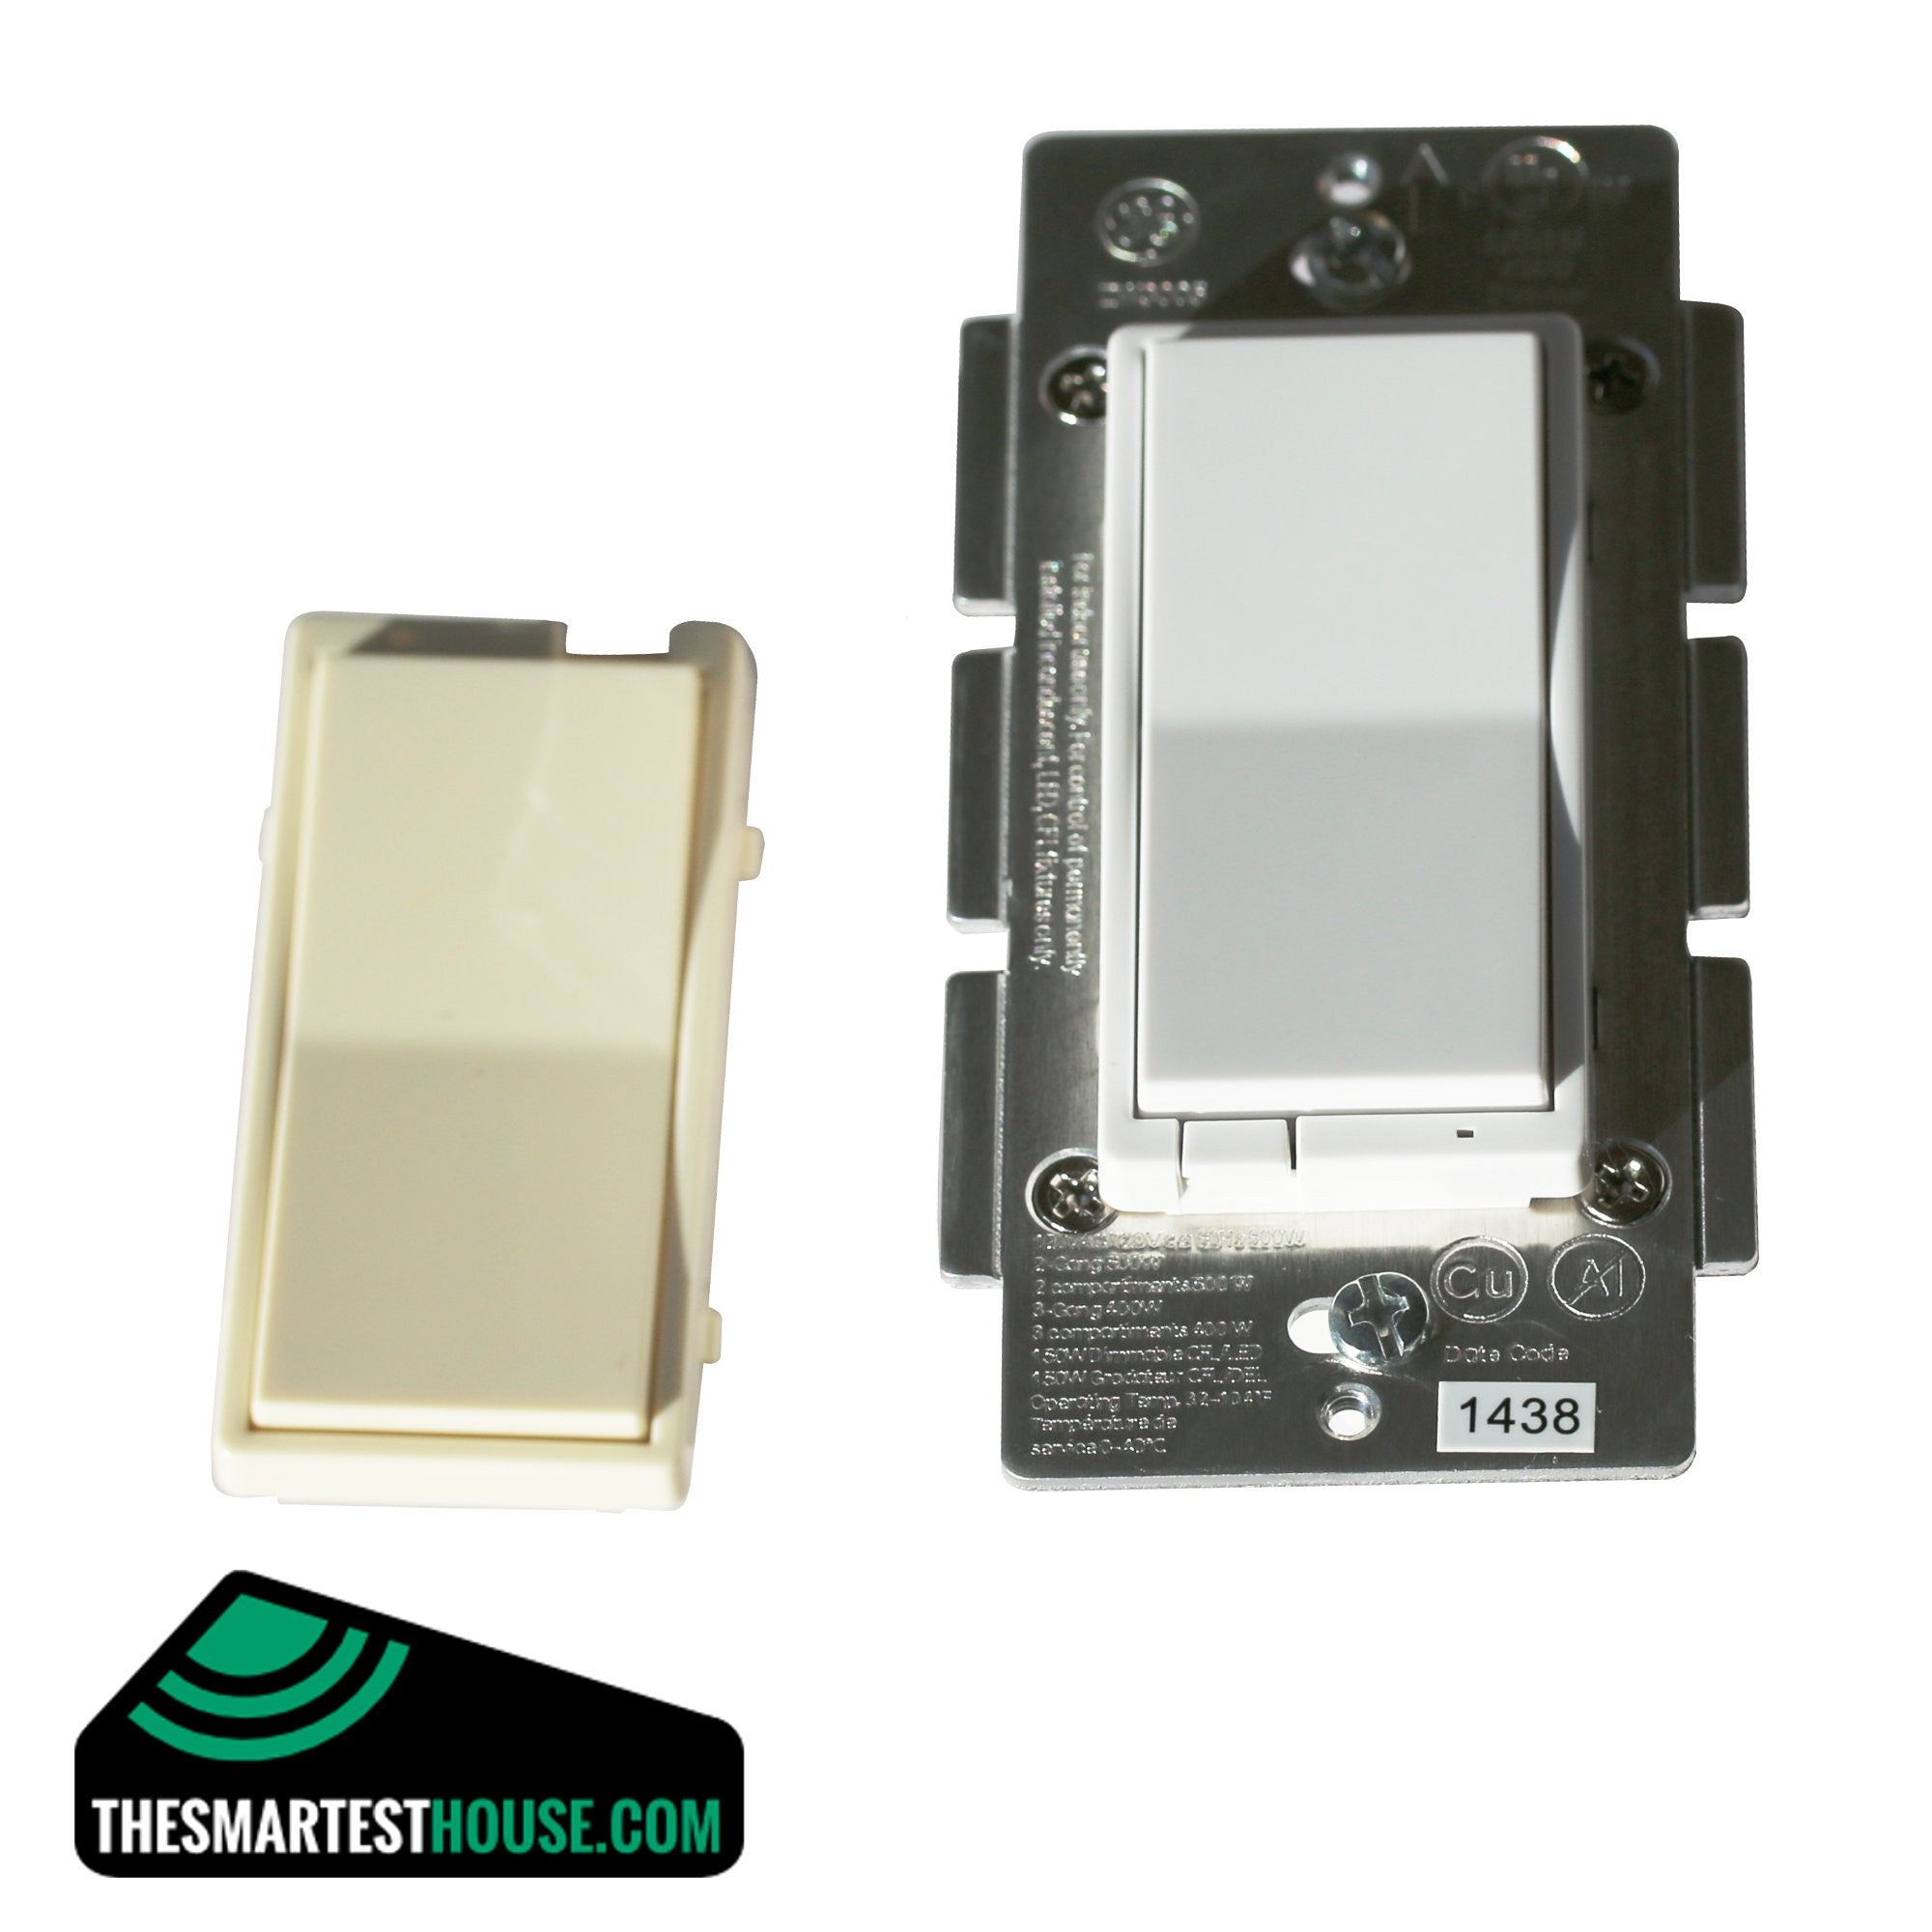 GE 12724 Z Wave In Wall Smart Dimmer (White and Almond Paddle) The  #069969